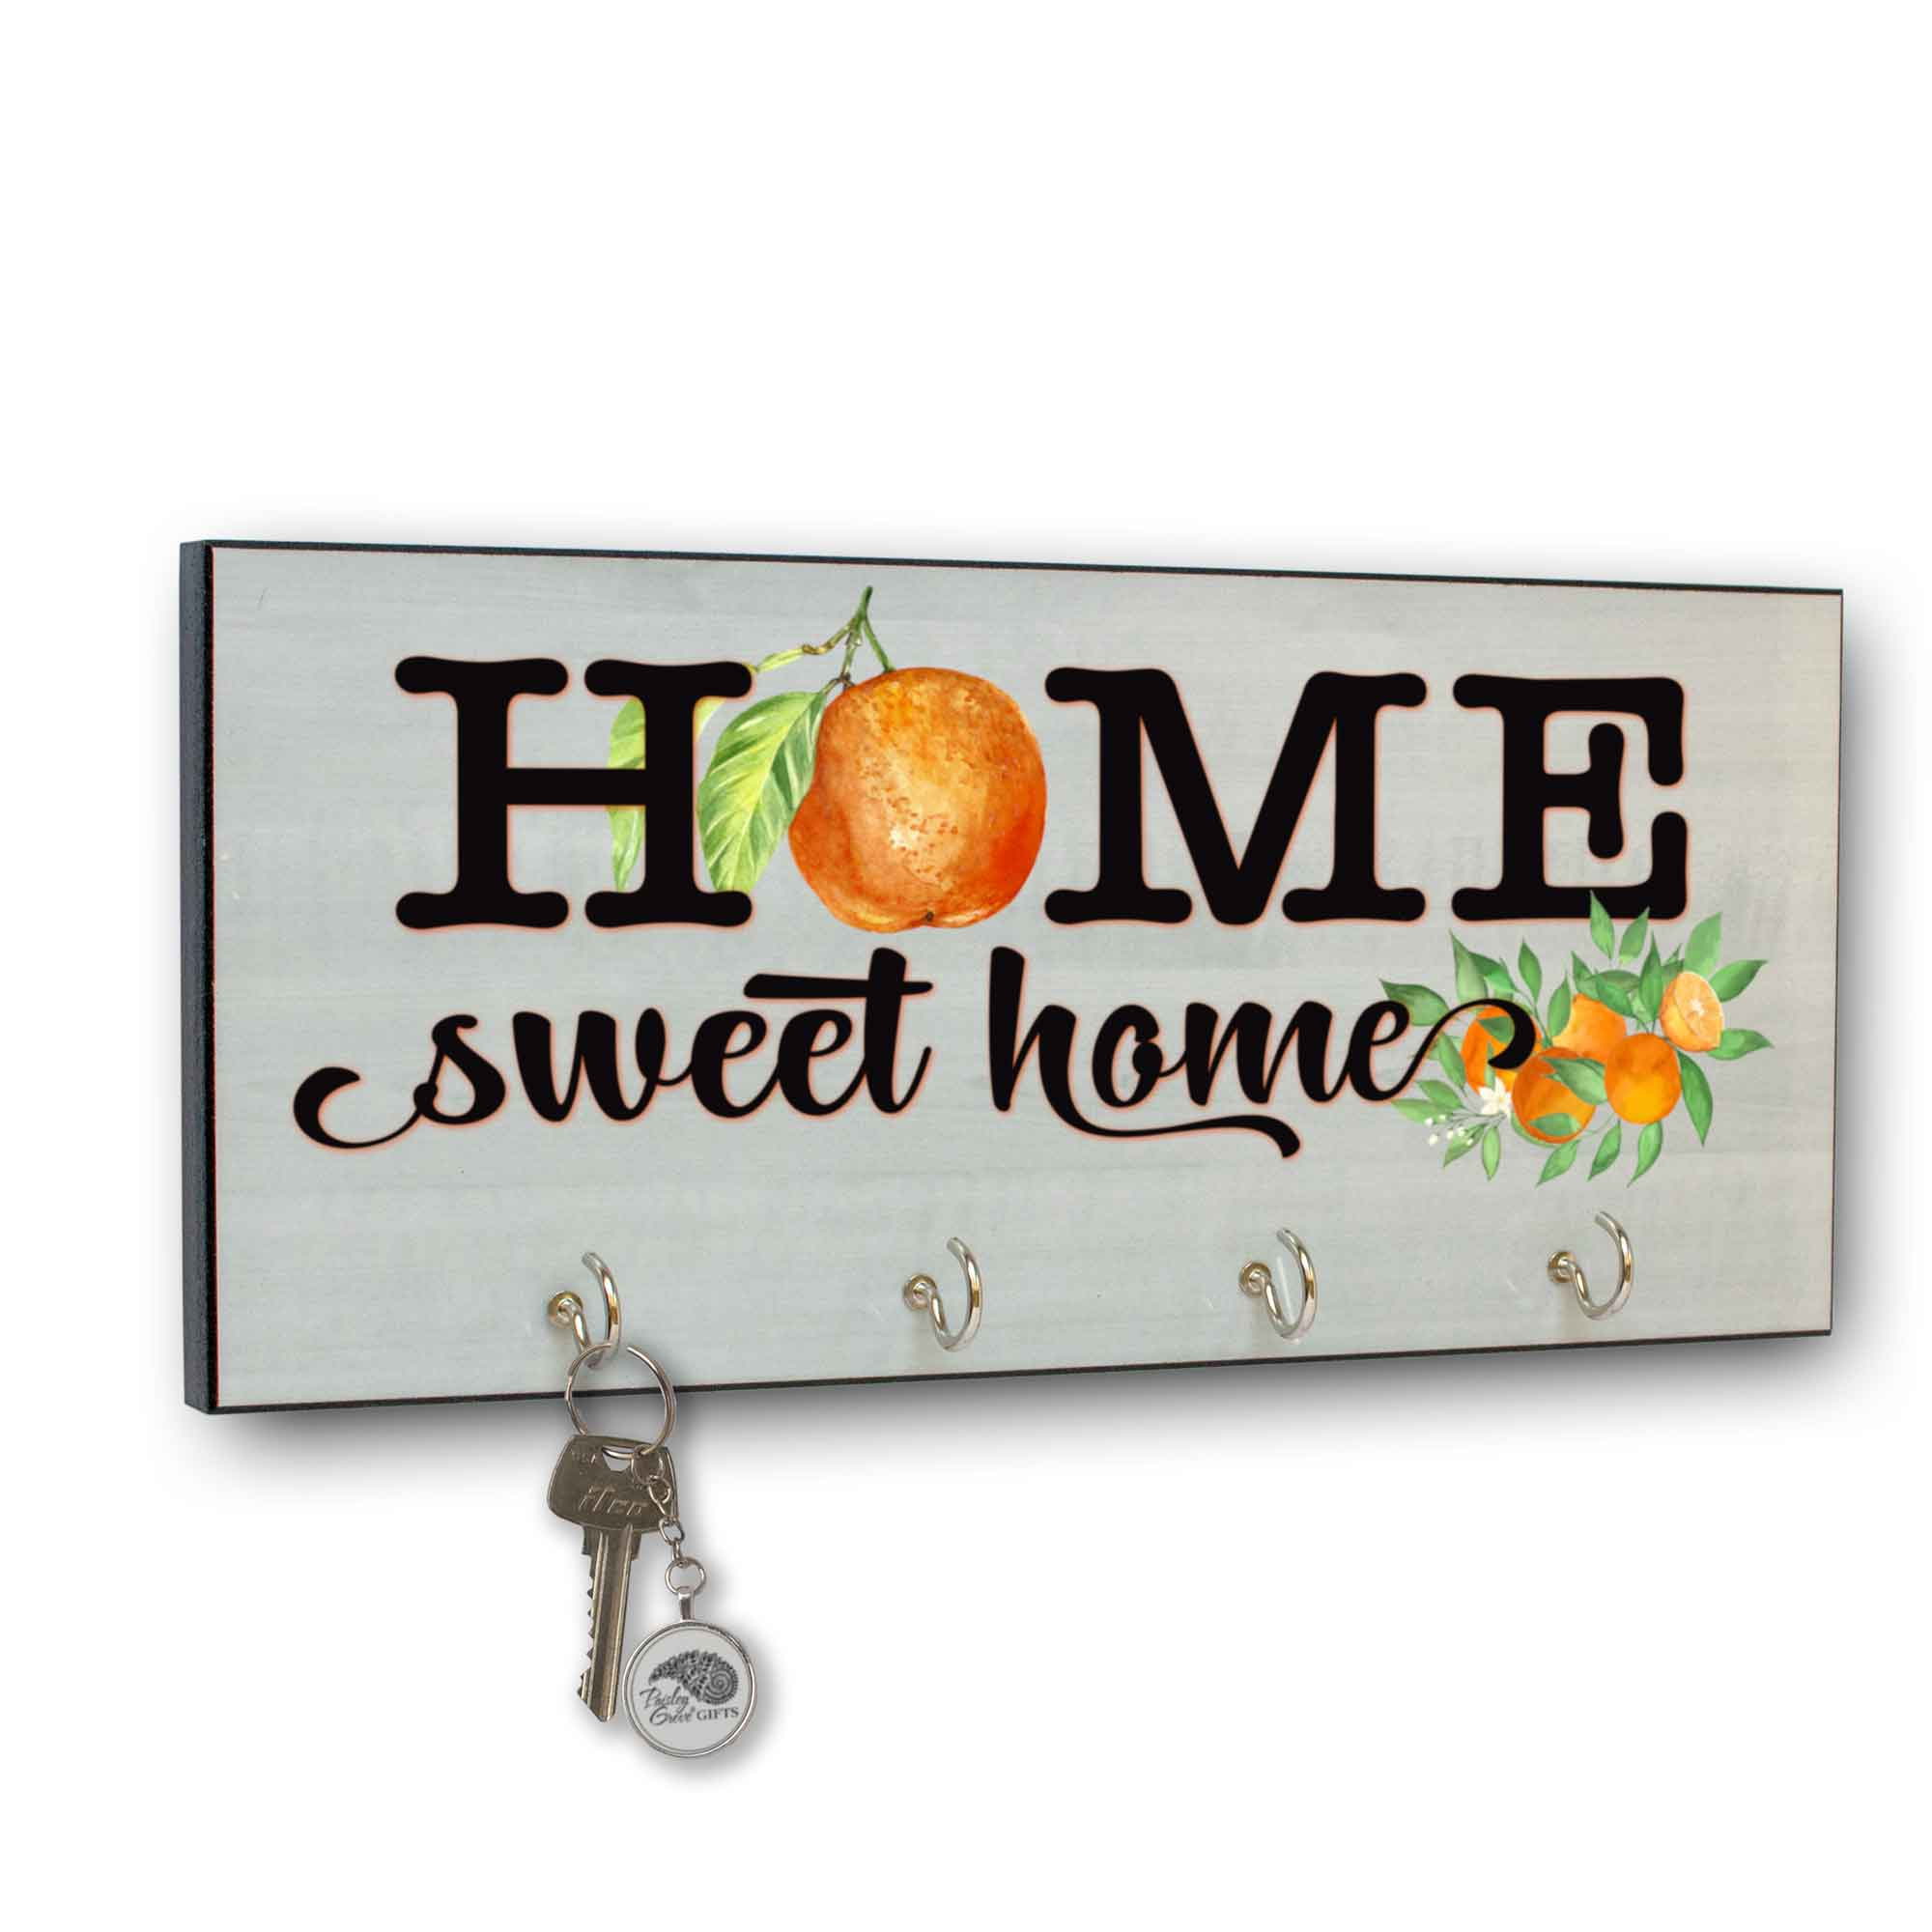 CopyrightPaisleyGroveGIFTS S311a Home Sweet Home key holder for wall Redlands Oranges Hometown